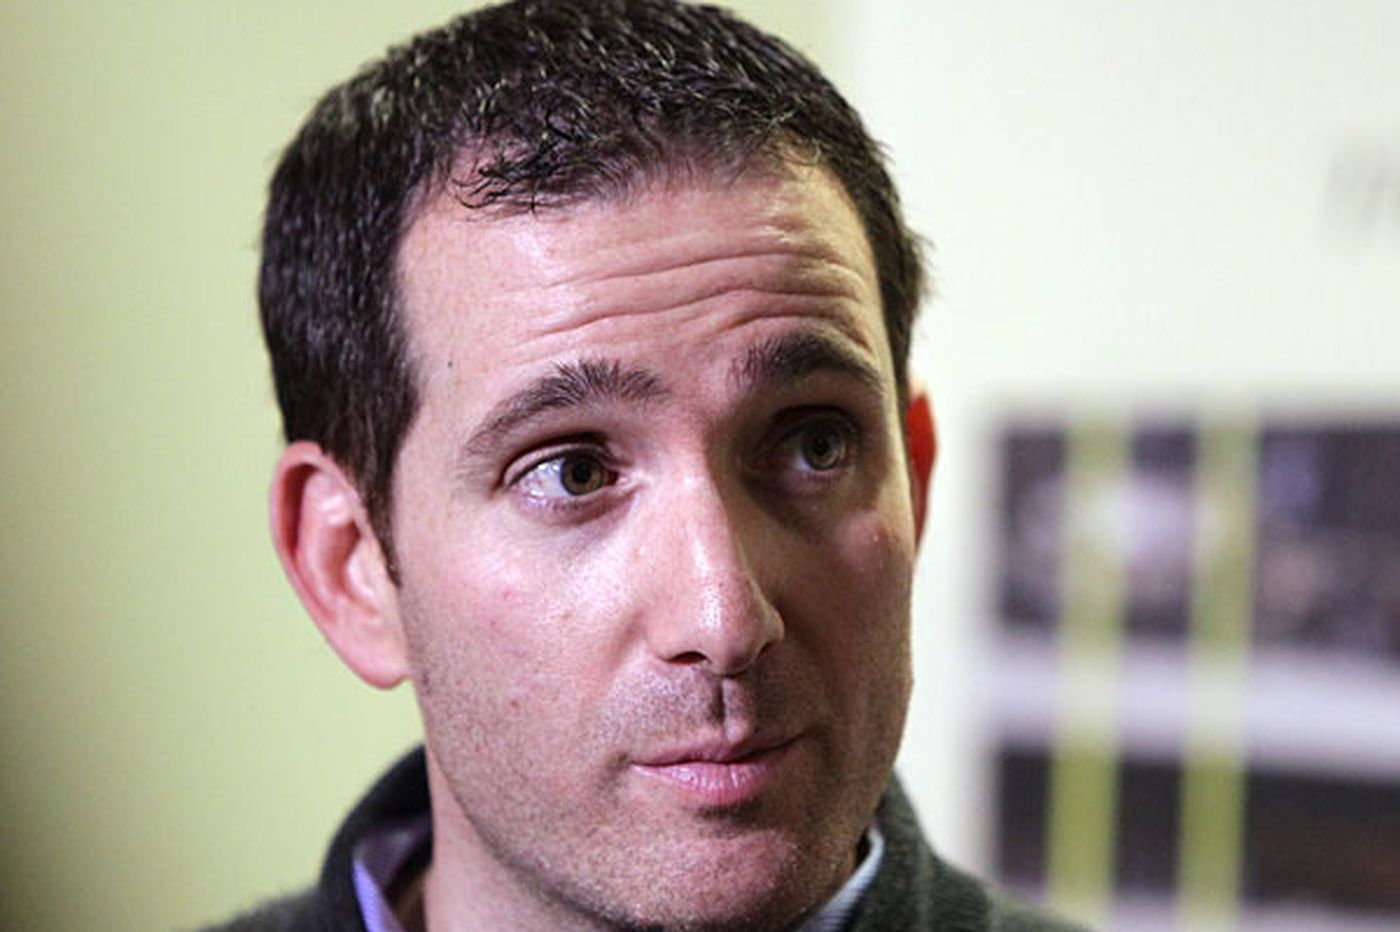 Eagles GM hints safety not draft priority